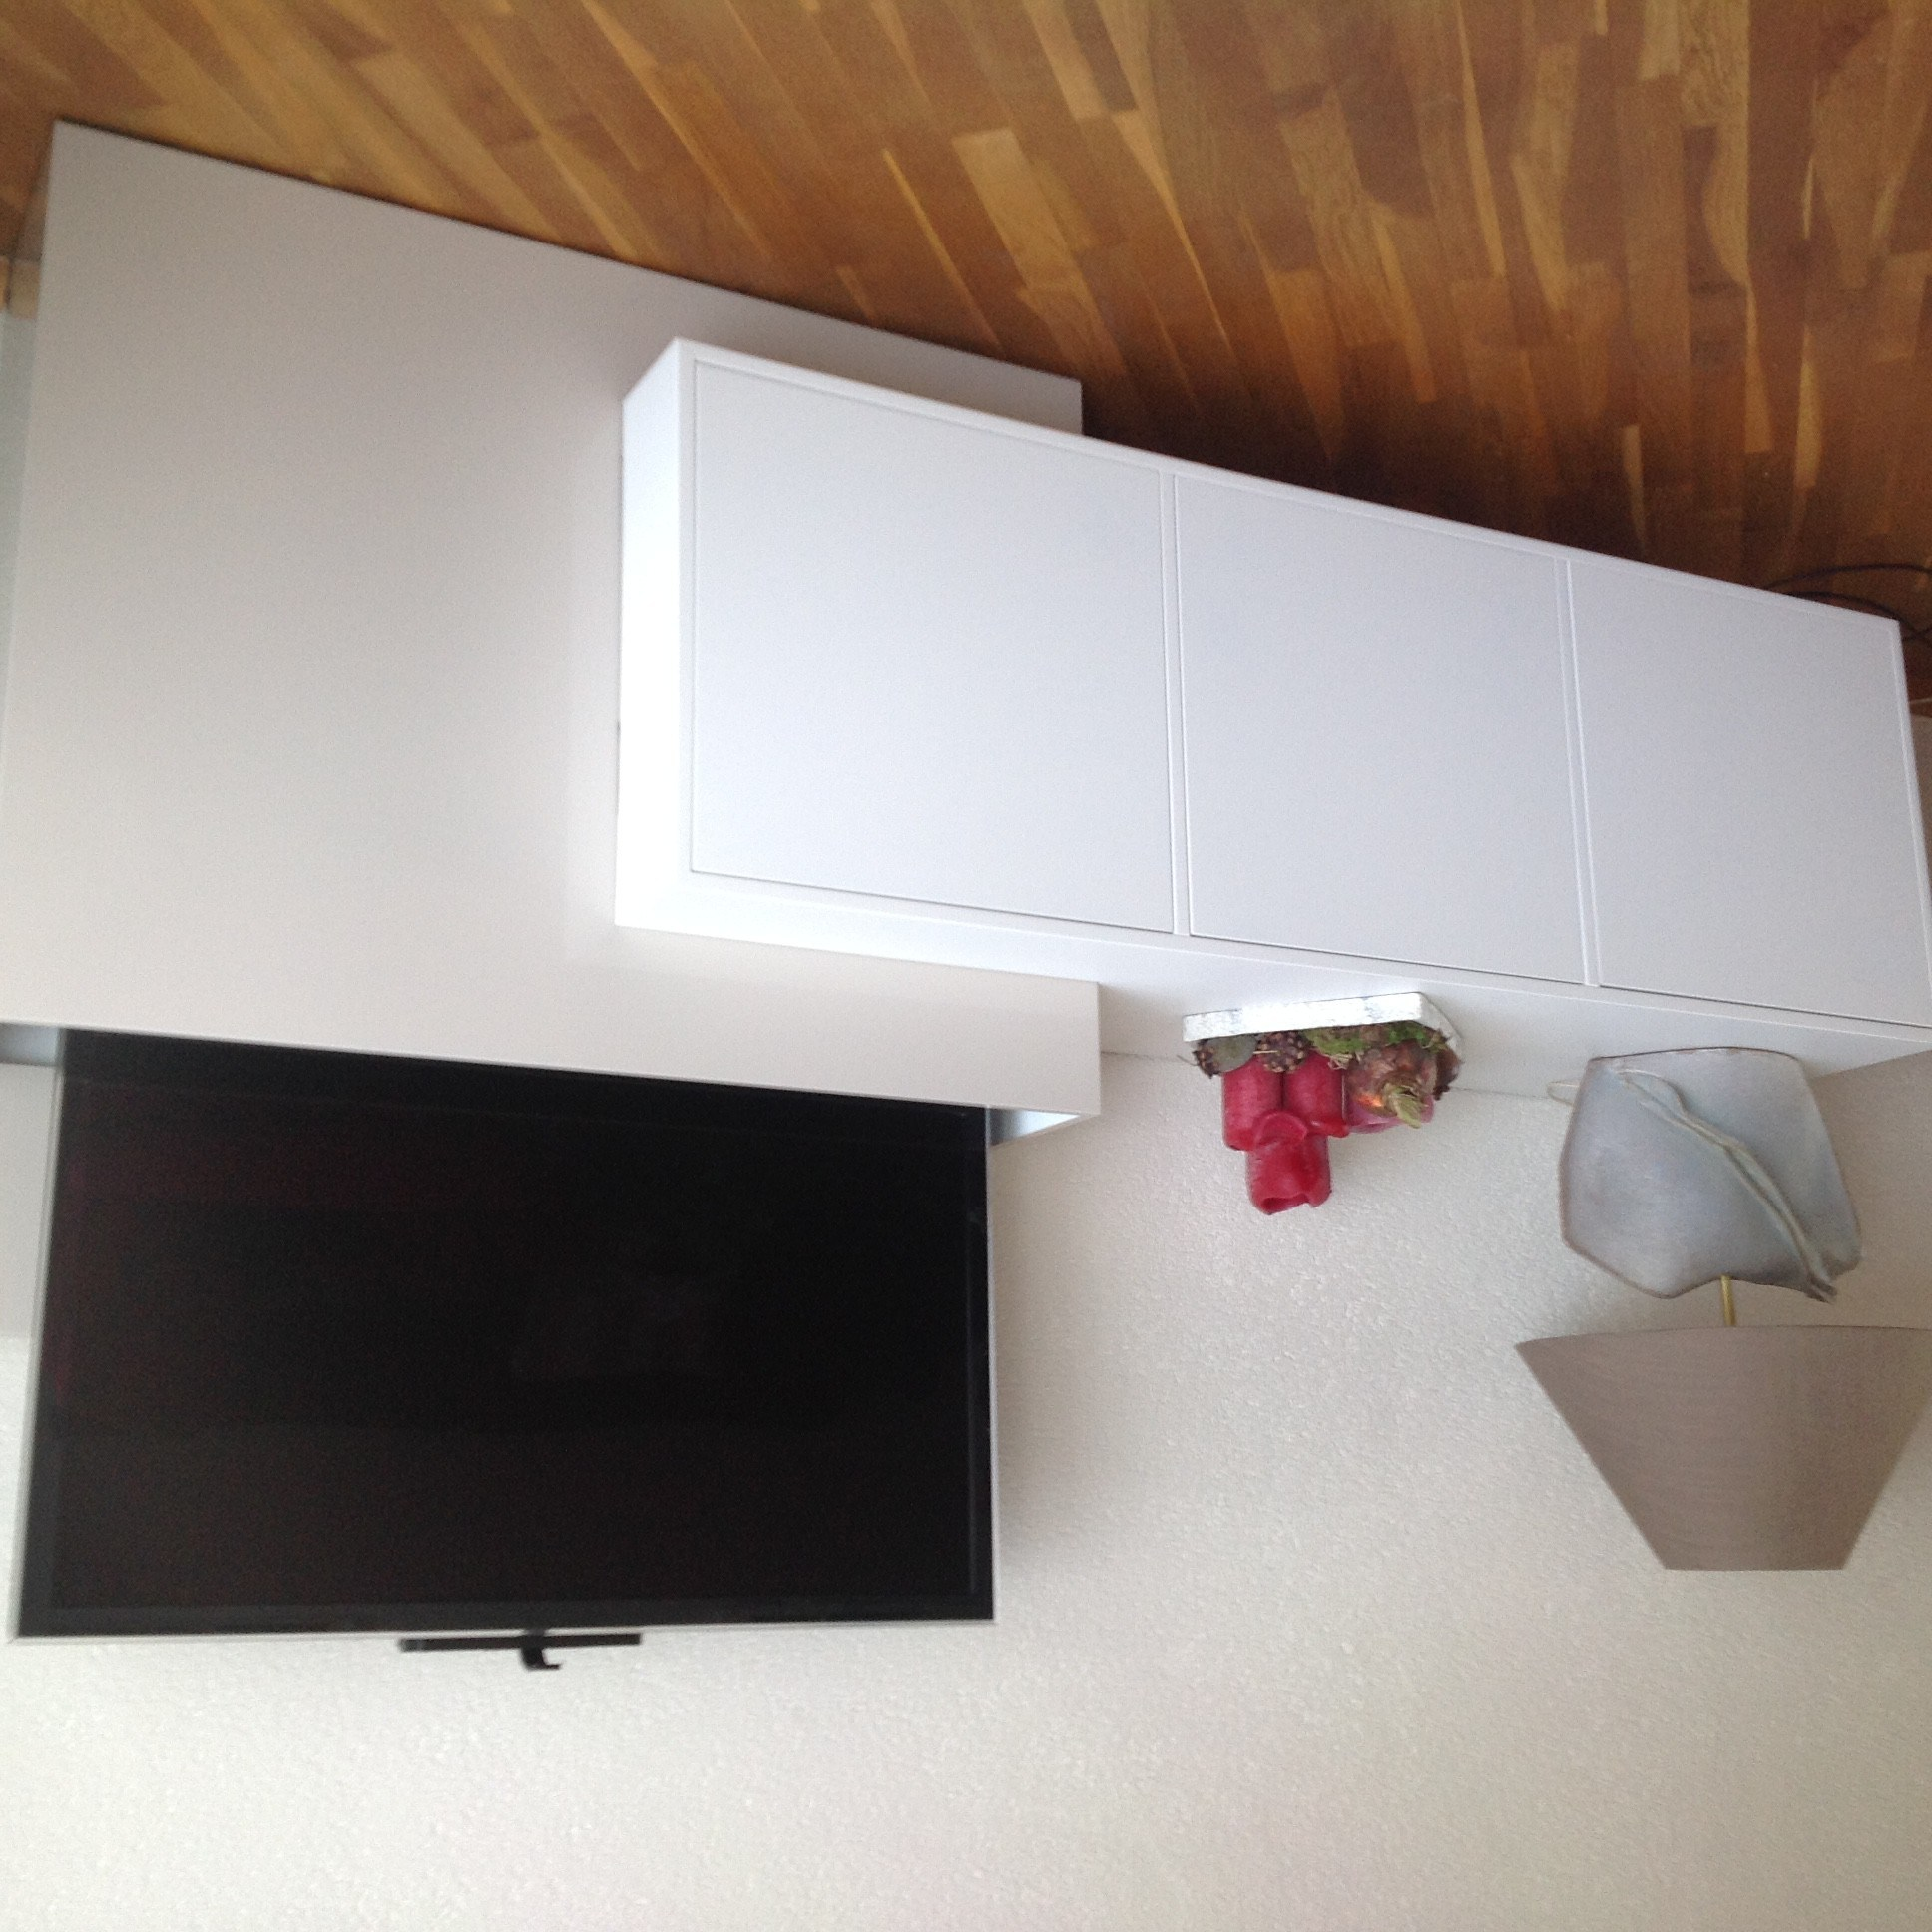 Kast Voeteneind Bed Top Interesting Tv Lift Meubel Voor Bed Tv Kast Met Lift